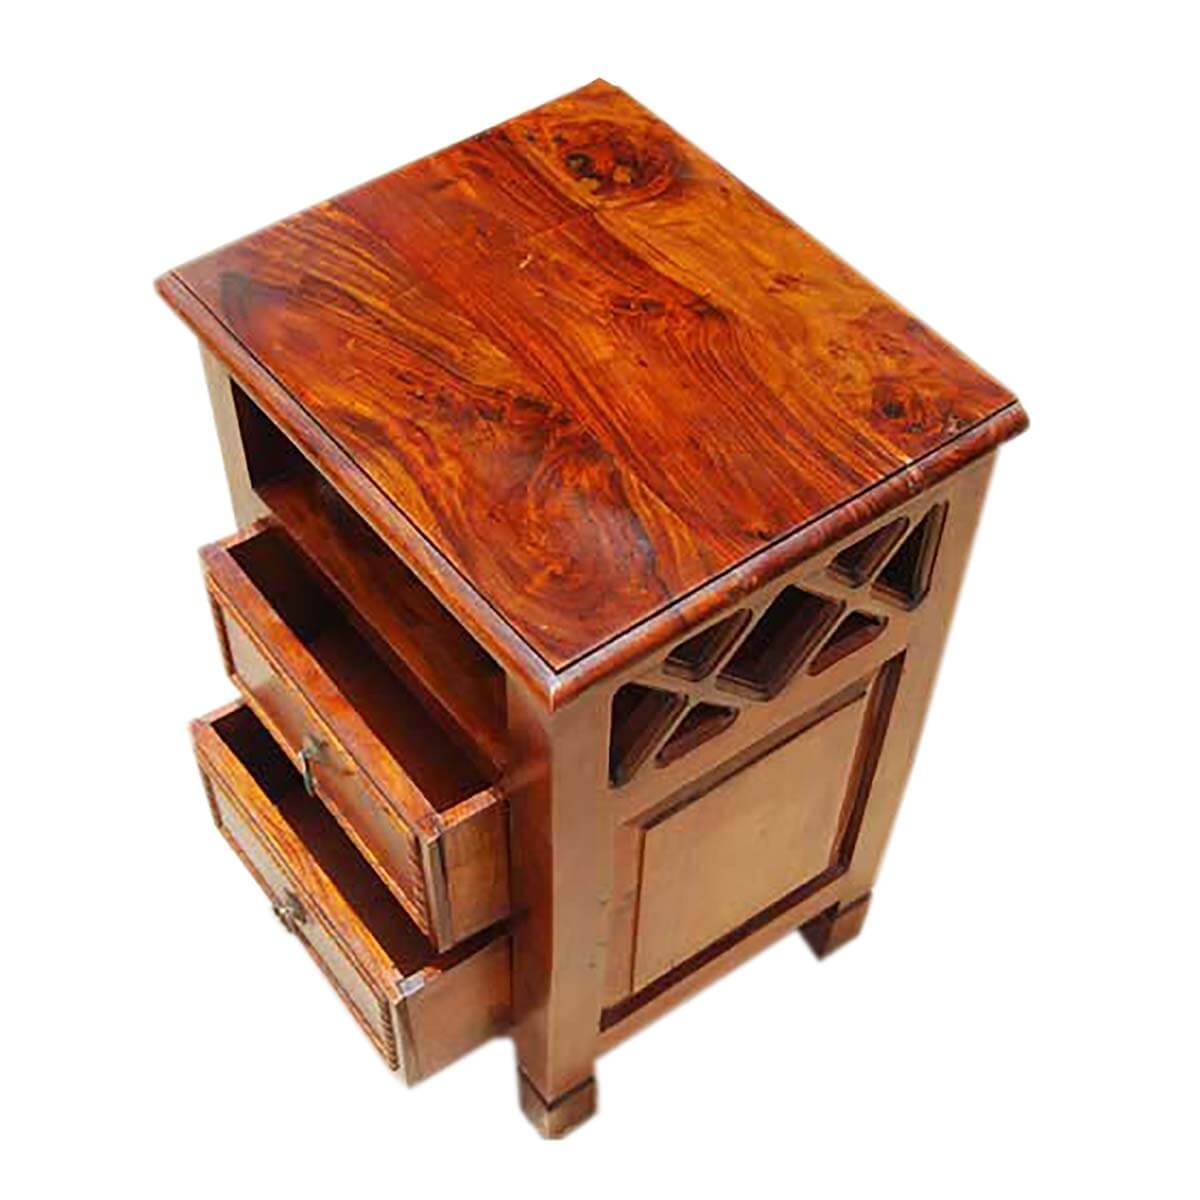 Wooden Tables Storage ~ Solid wood storage drawers side end table night stand